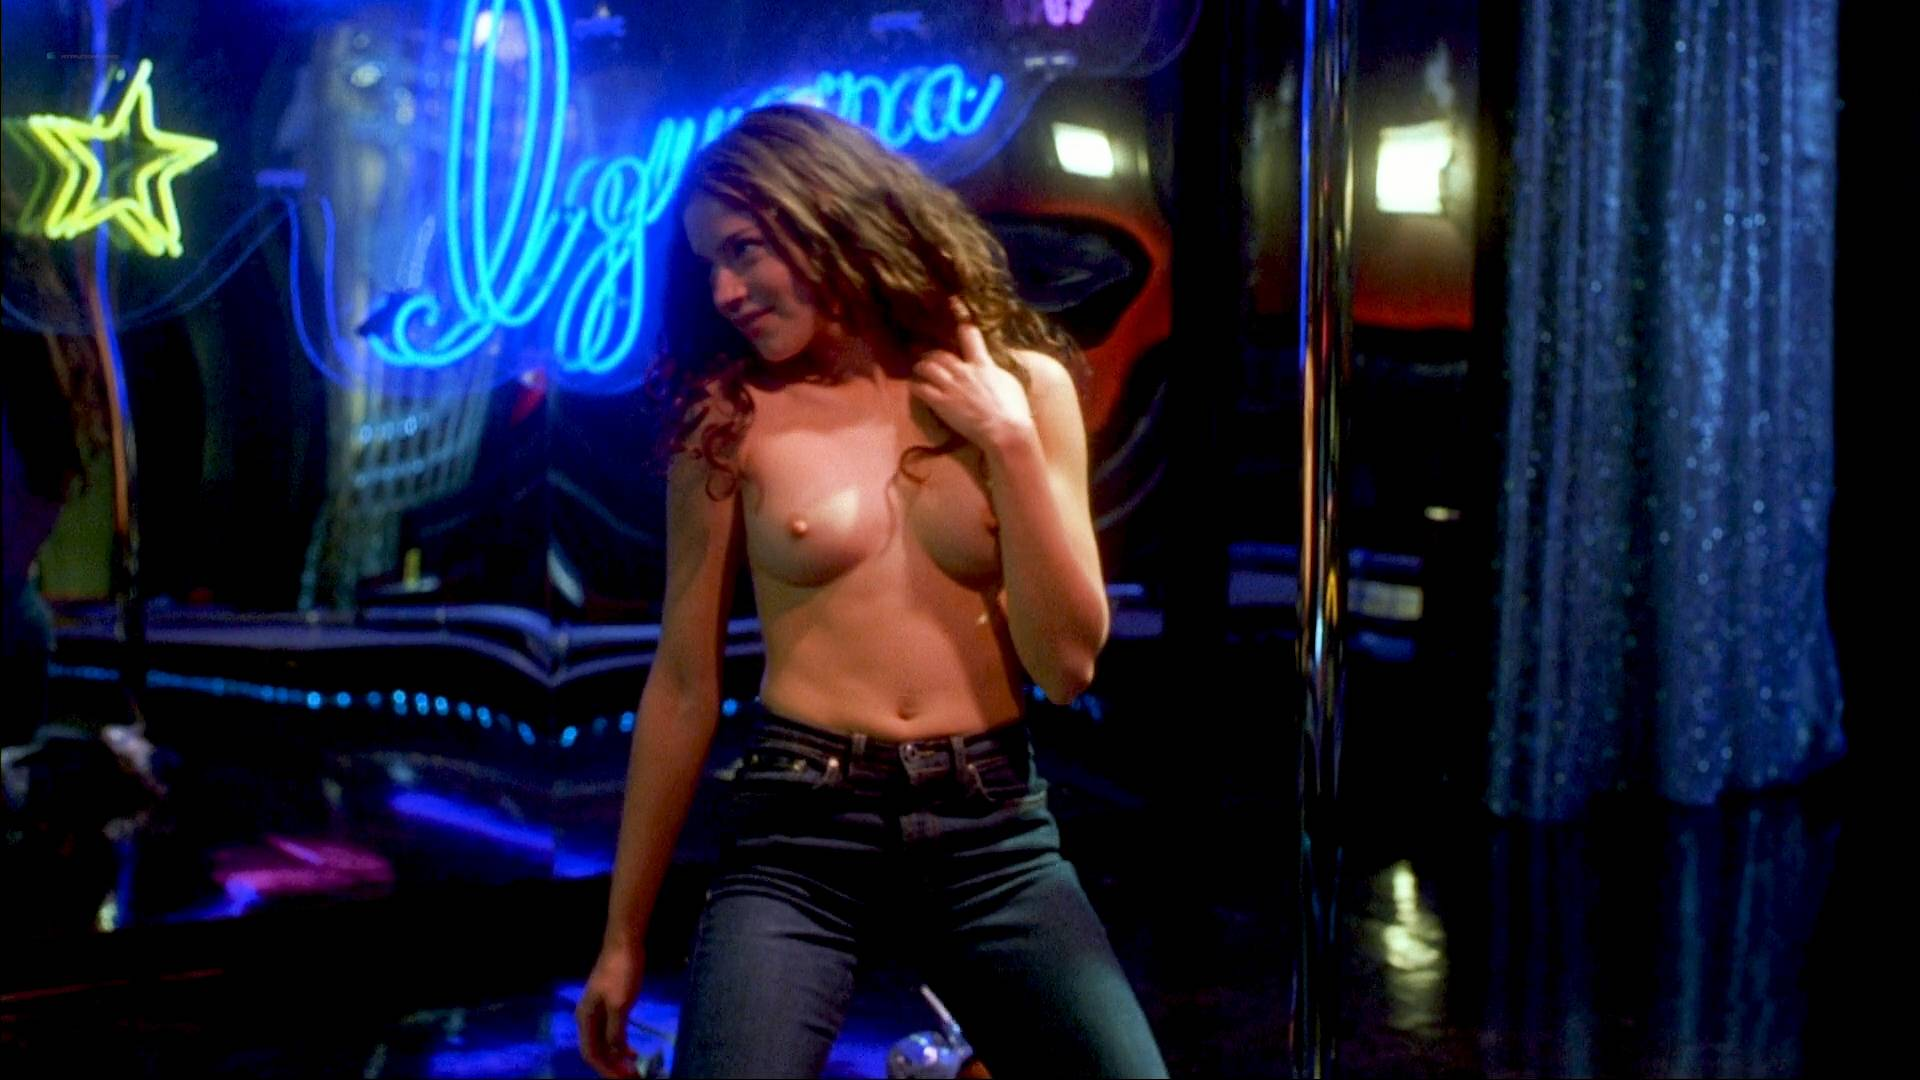 Kristin bauer topless dancing at the blue iguana 2000 7